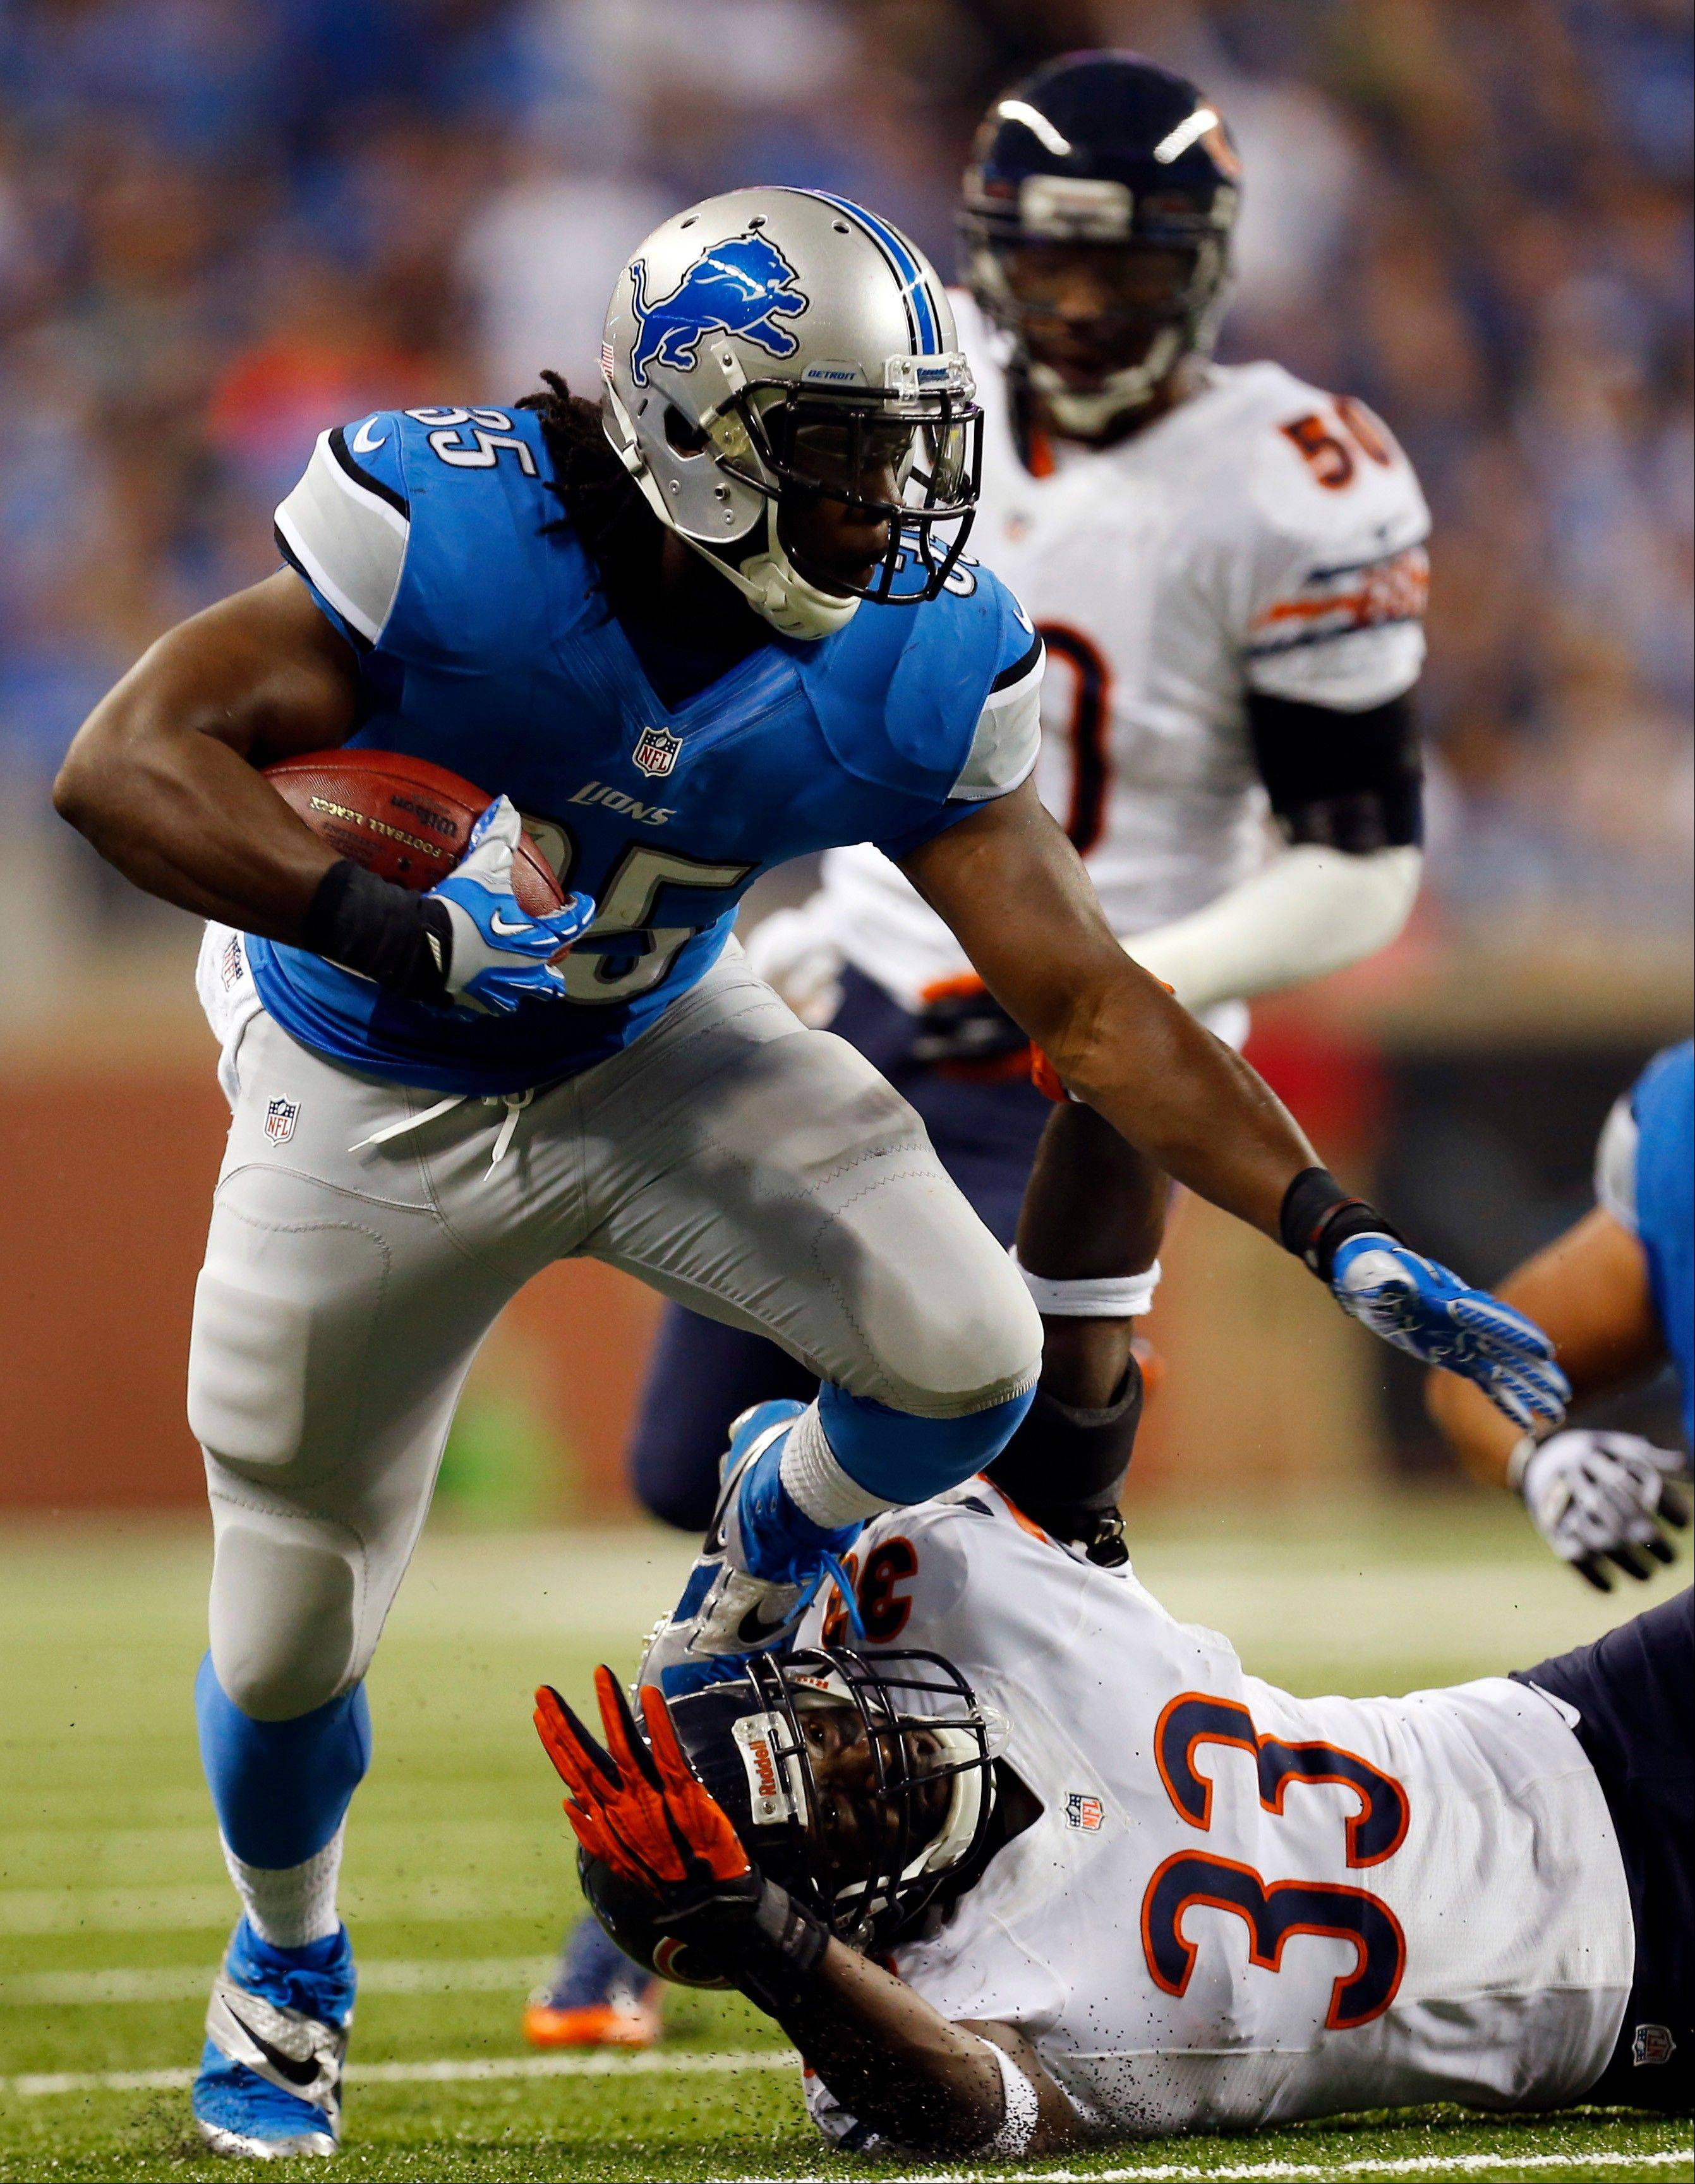 Detroit Lions running back Joique Bell (35) pulls away from Chicago Bears cornerback Charles Tillman (33) during the first quarter.